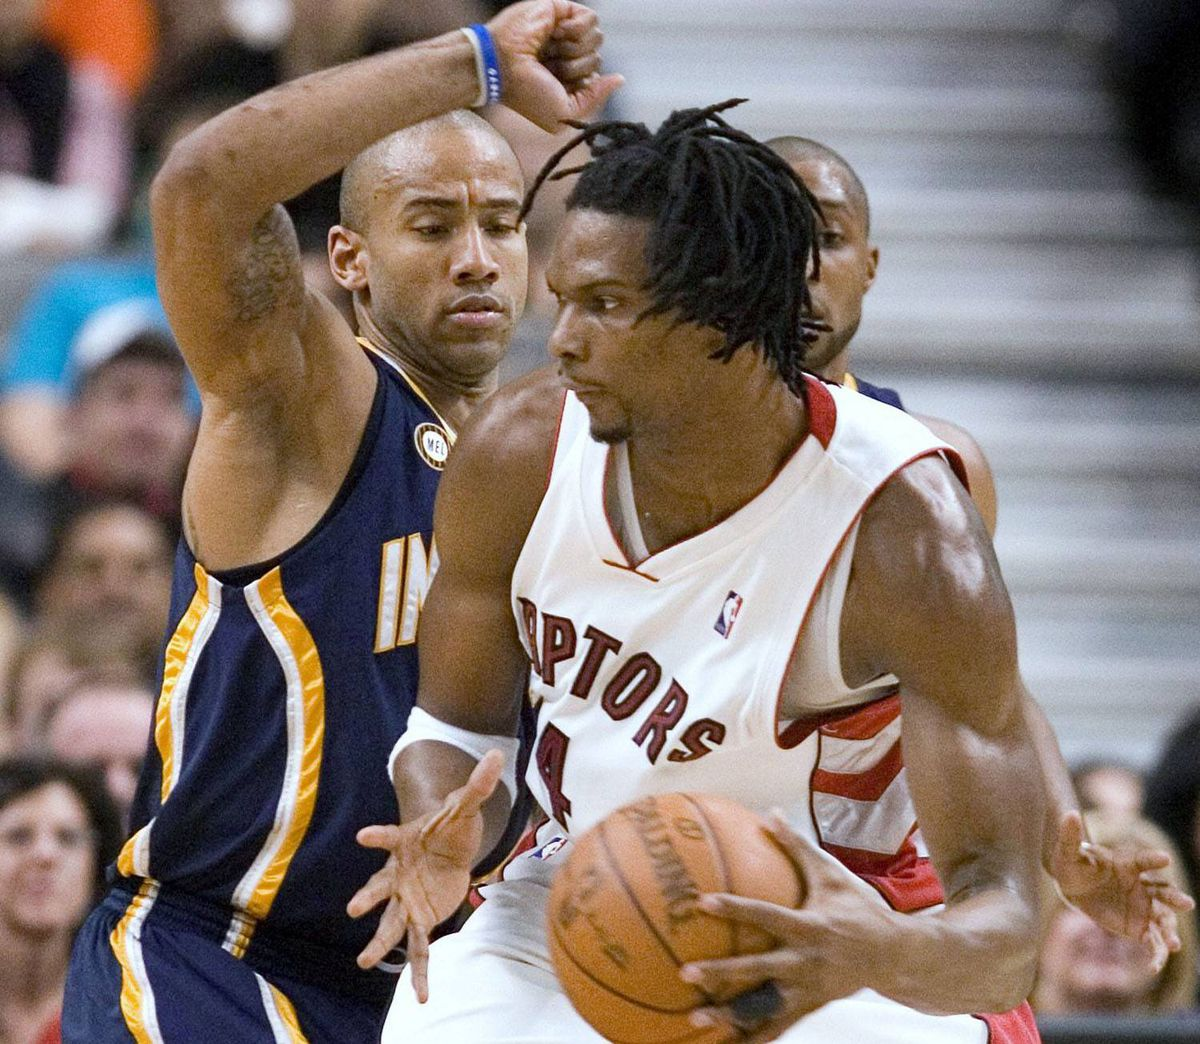 Toronto Raptors' Chris Bosh (R) drives to the basket past Indiana Pacers' Dahntay Jones in the first half of their NBA basketball game in Toronto January 31, 2010. REUTERS/Fred Thornhill